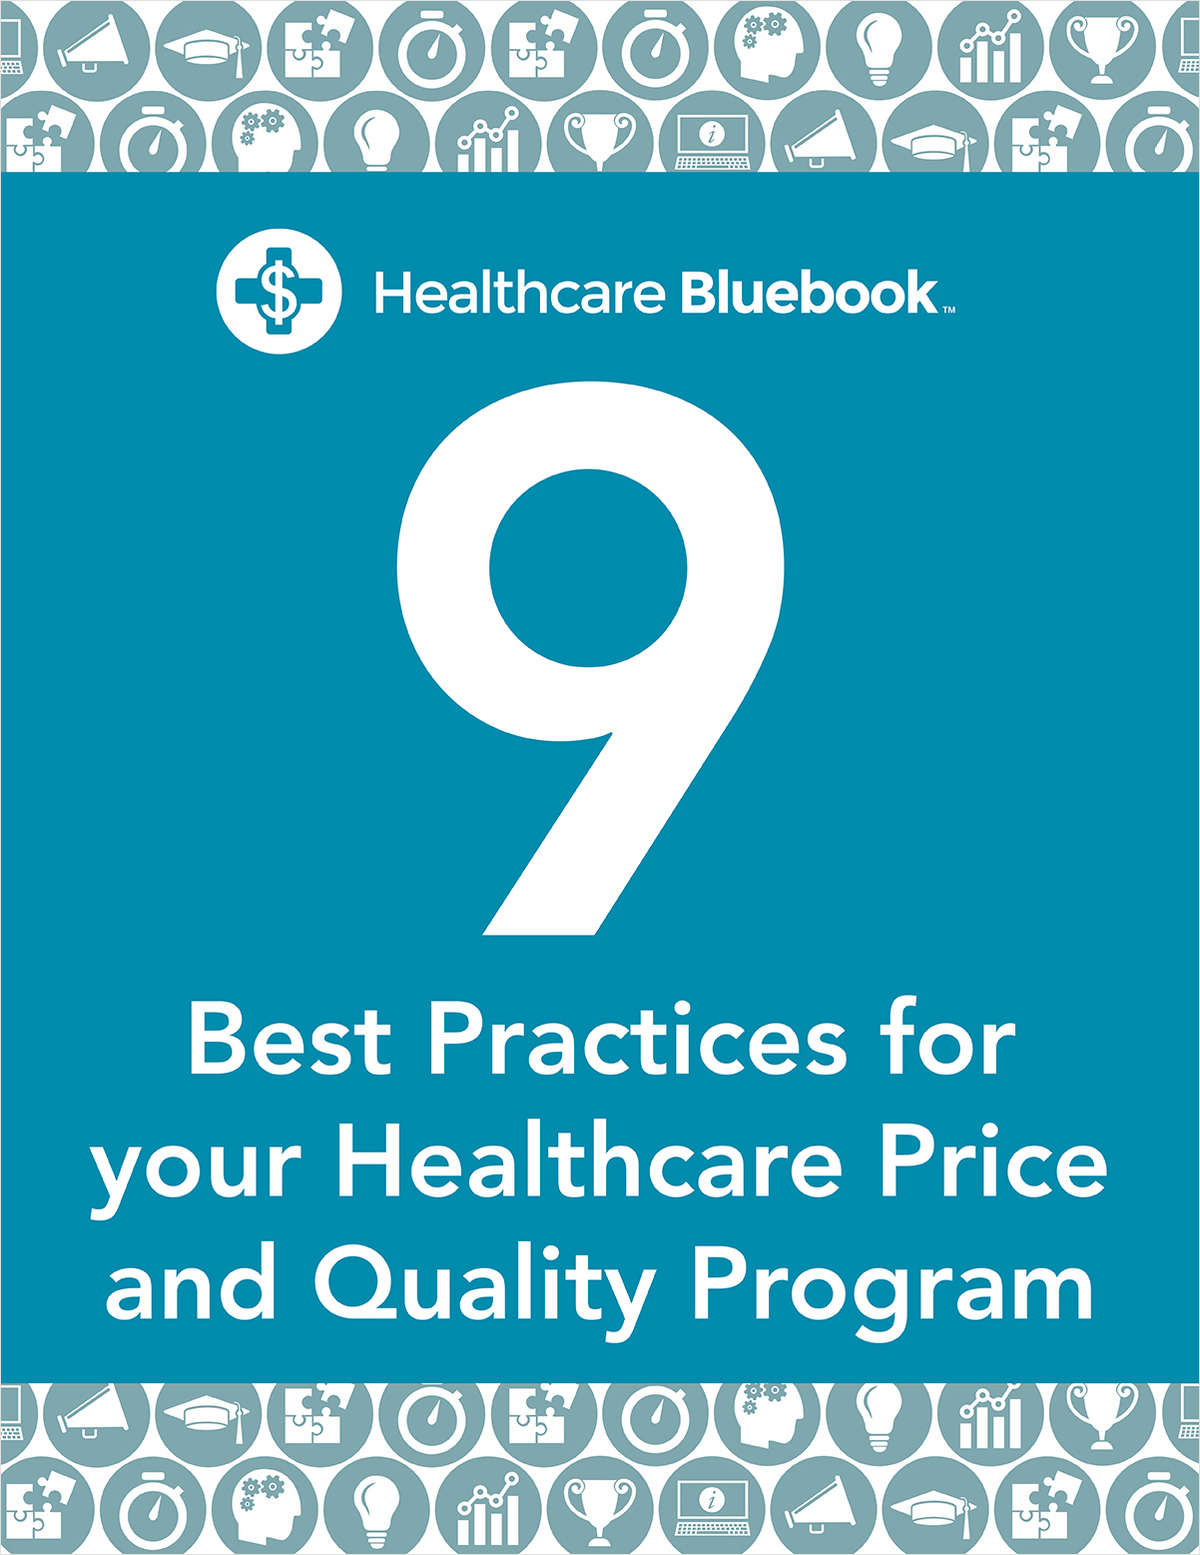 9 Best Practices for your Healthcare Price Transparency  Program